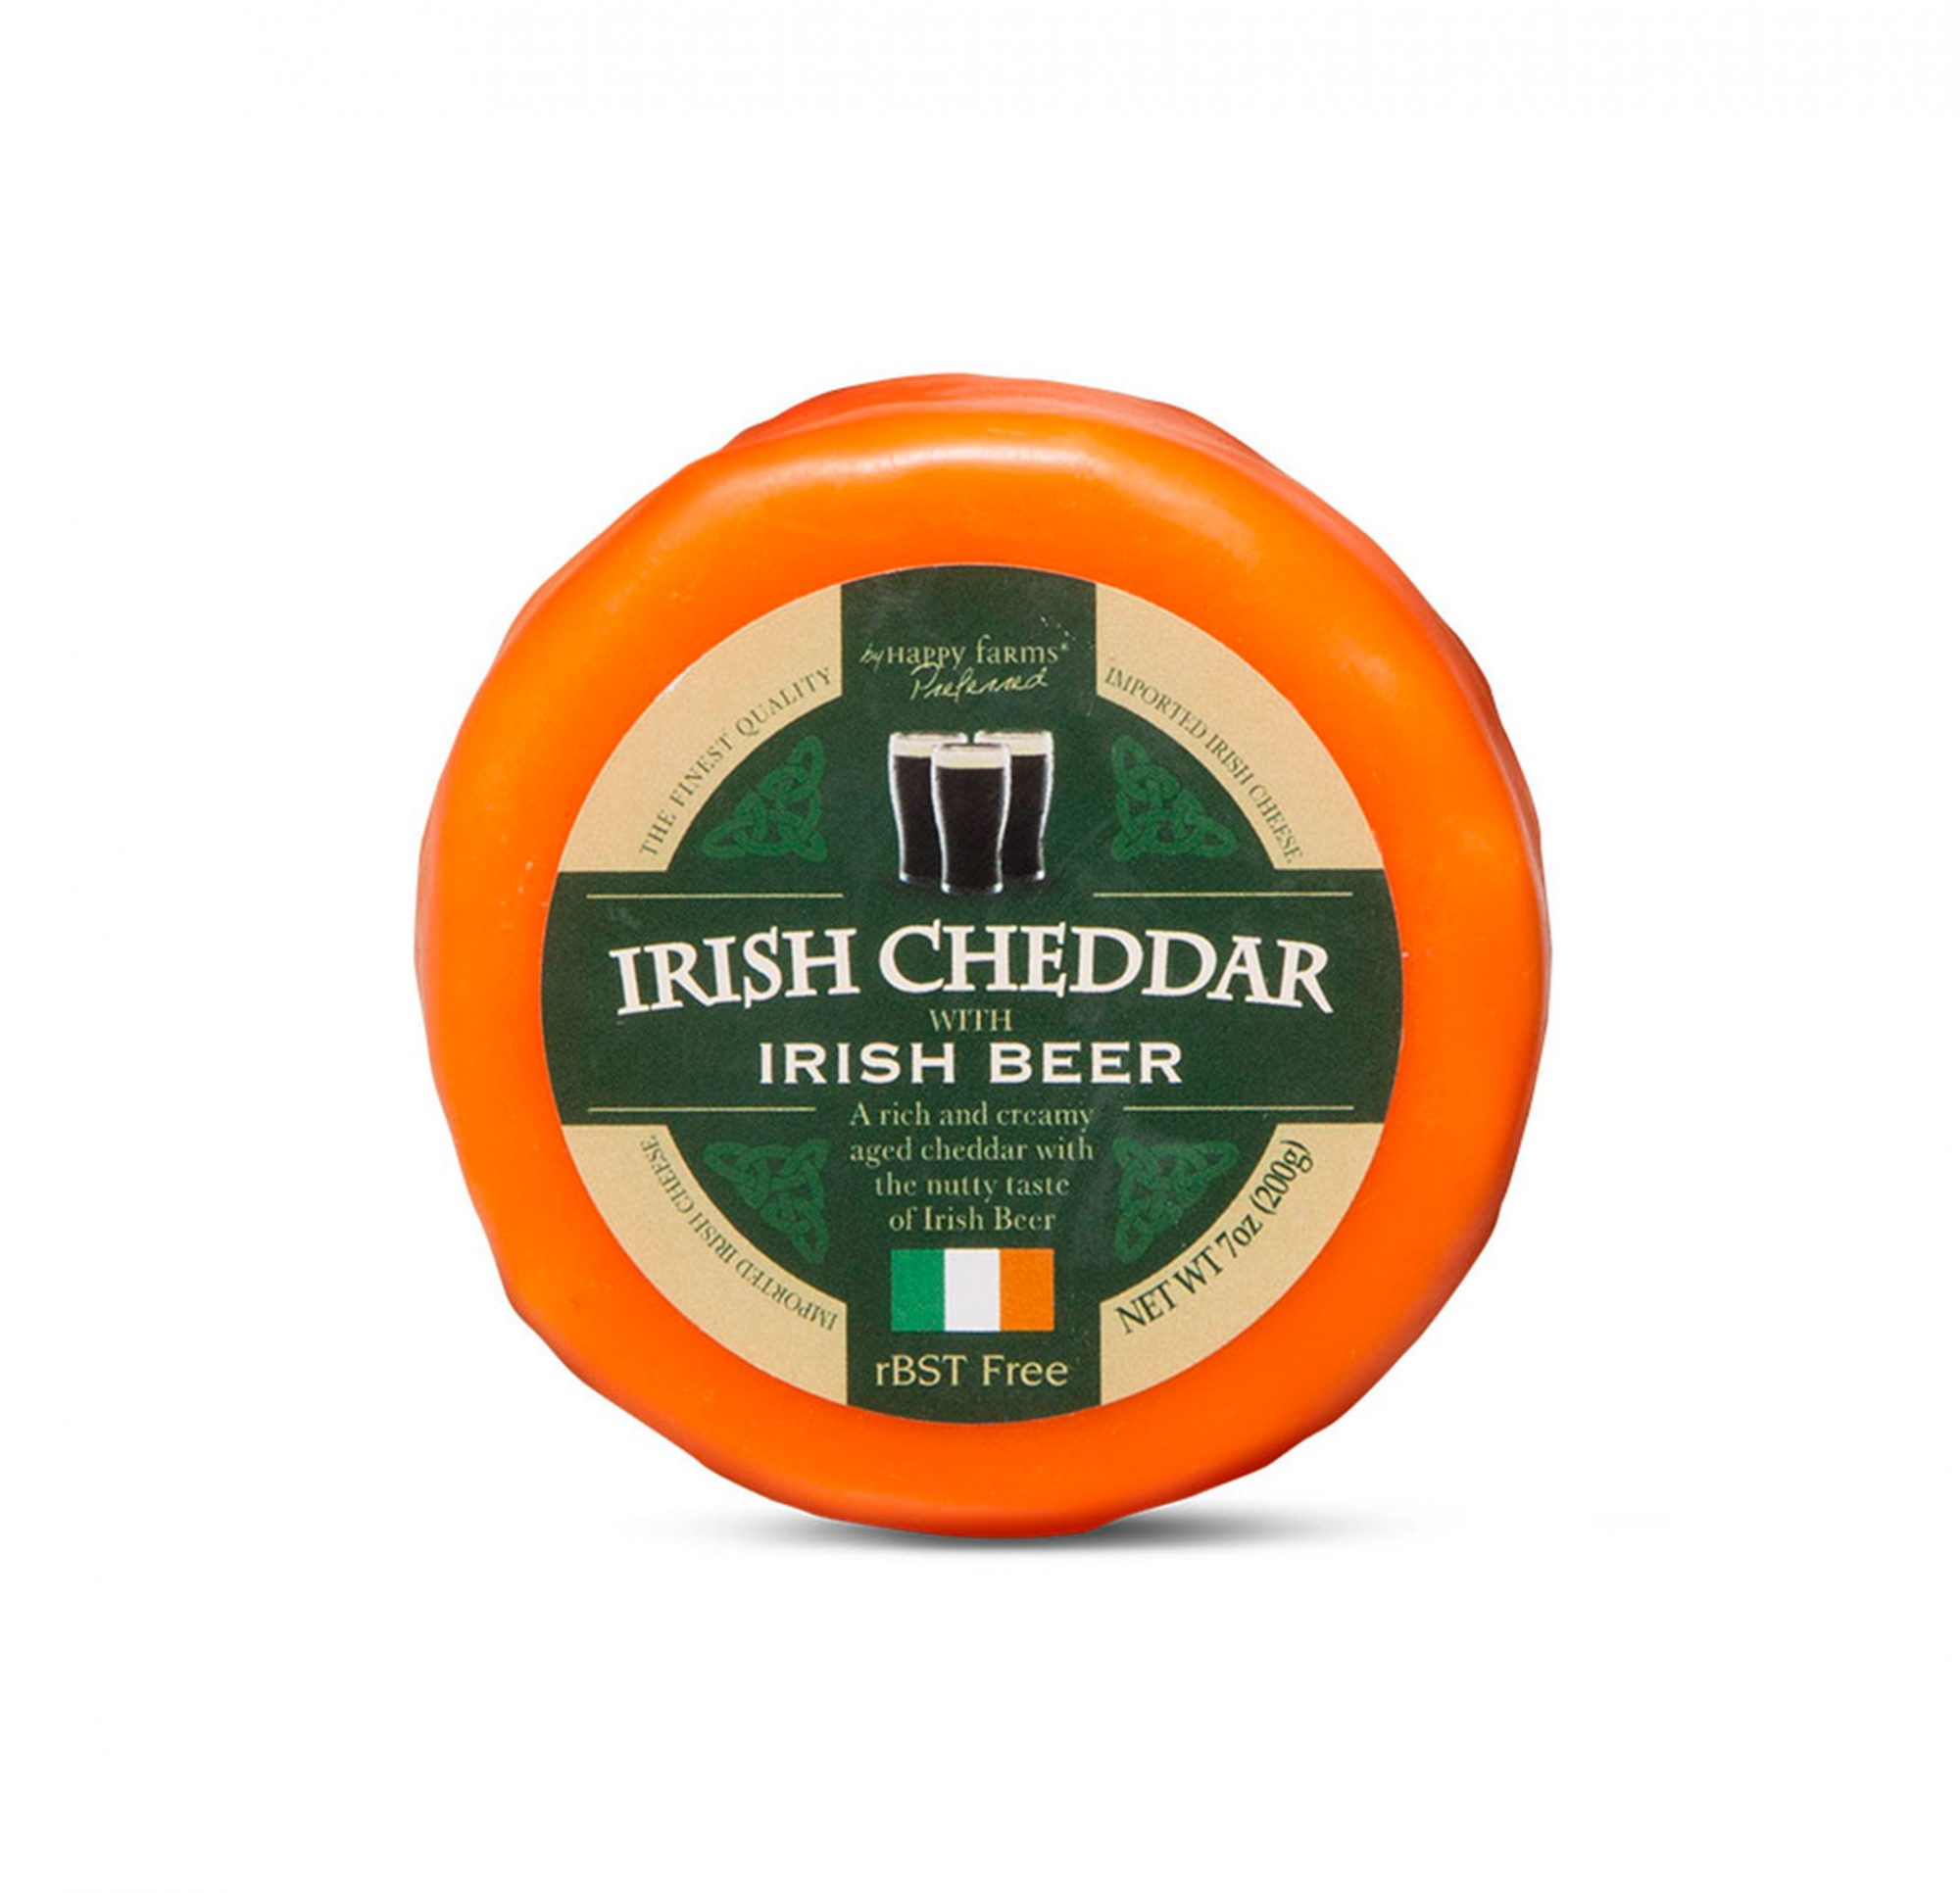 Aldi Debuts Green and Alcohol-Infused Cheeses For St. Patrick's Day cheese-2